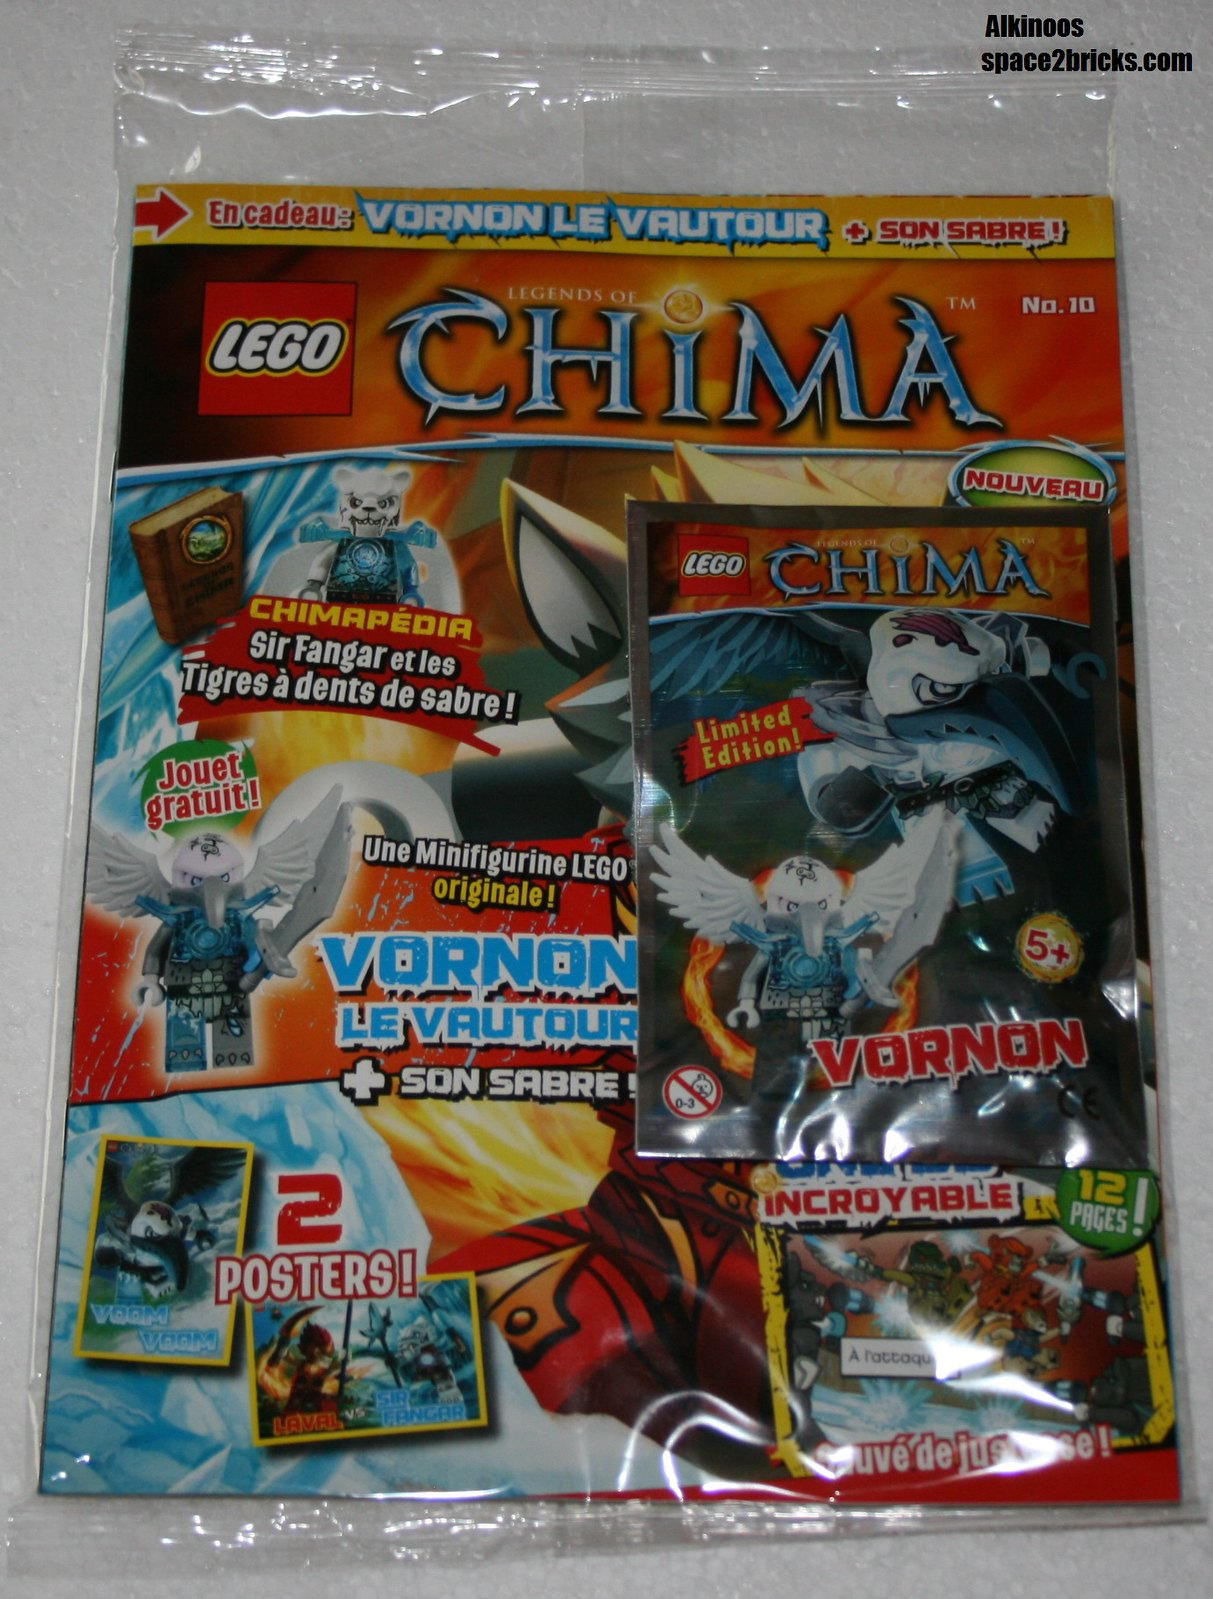 Lego Chima Vornon Legends of Chima Vornon p1